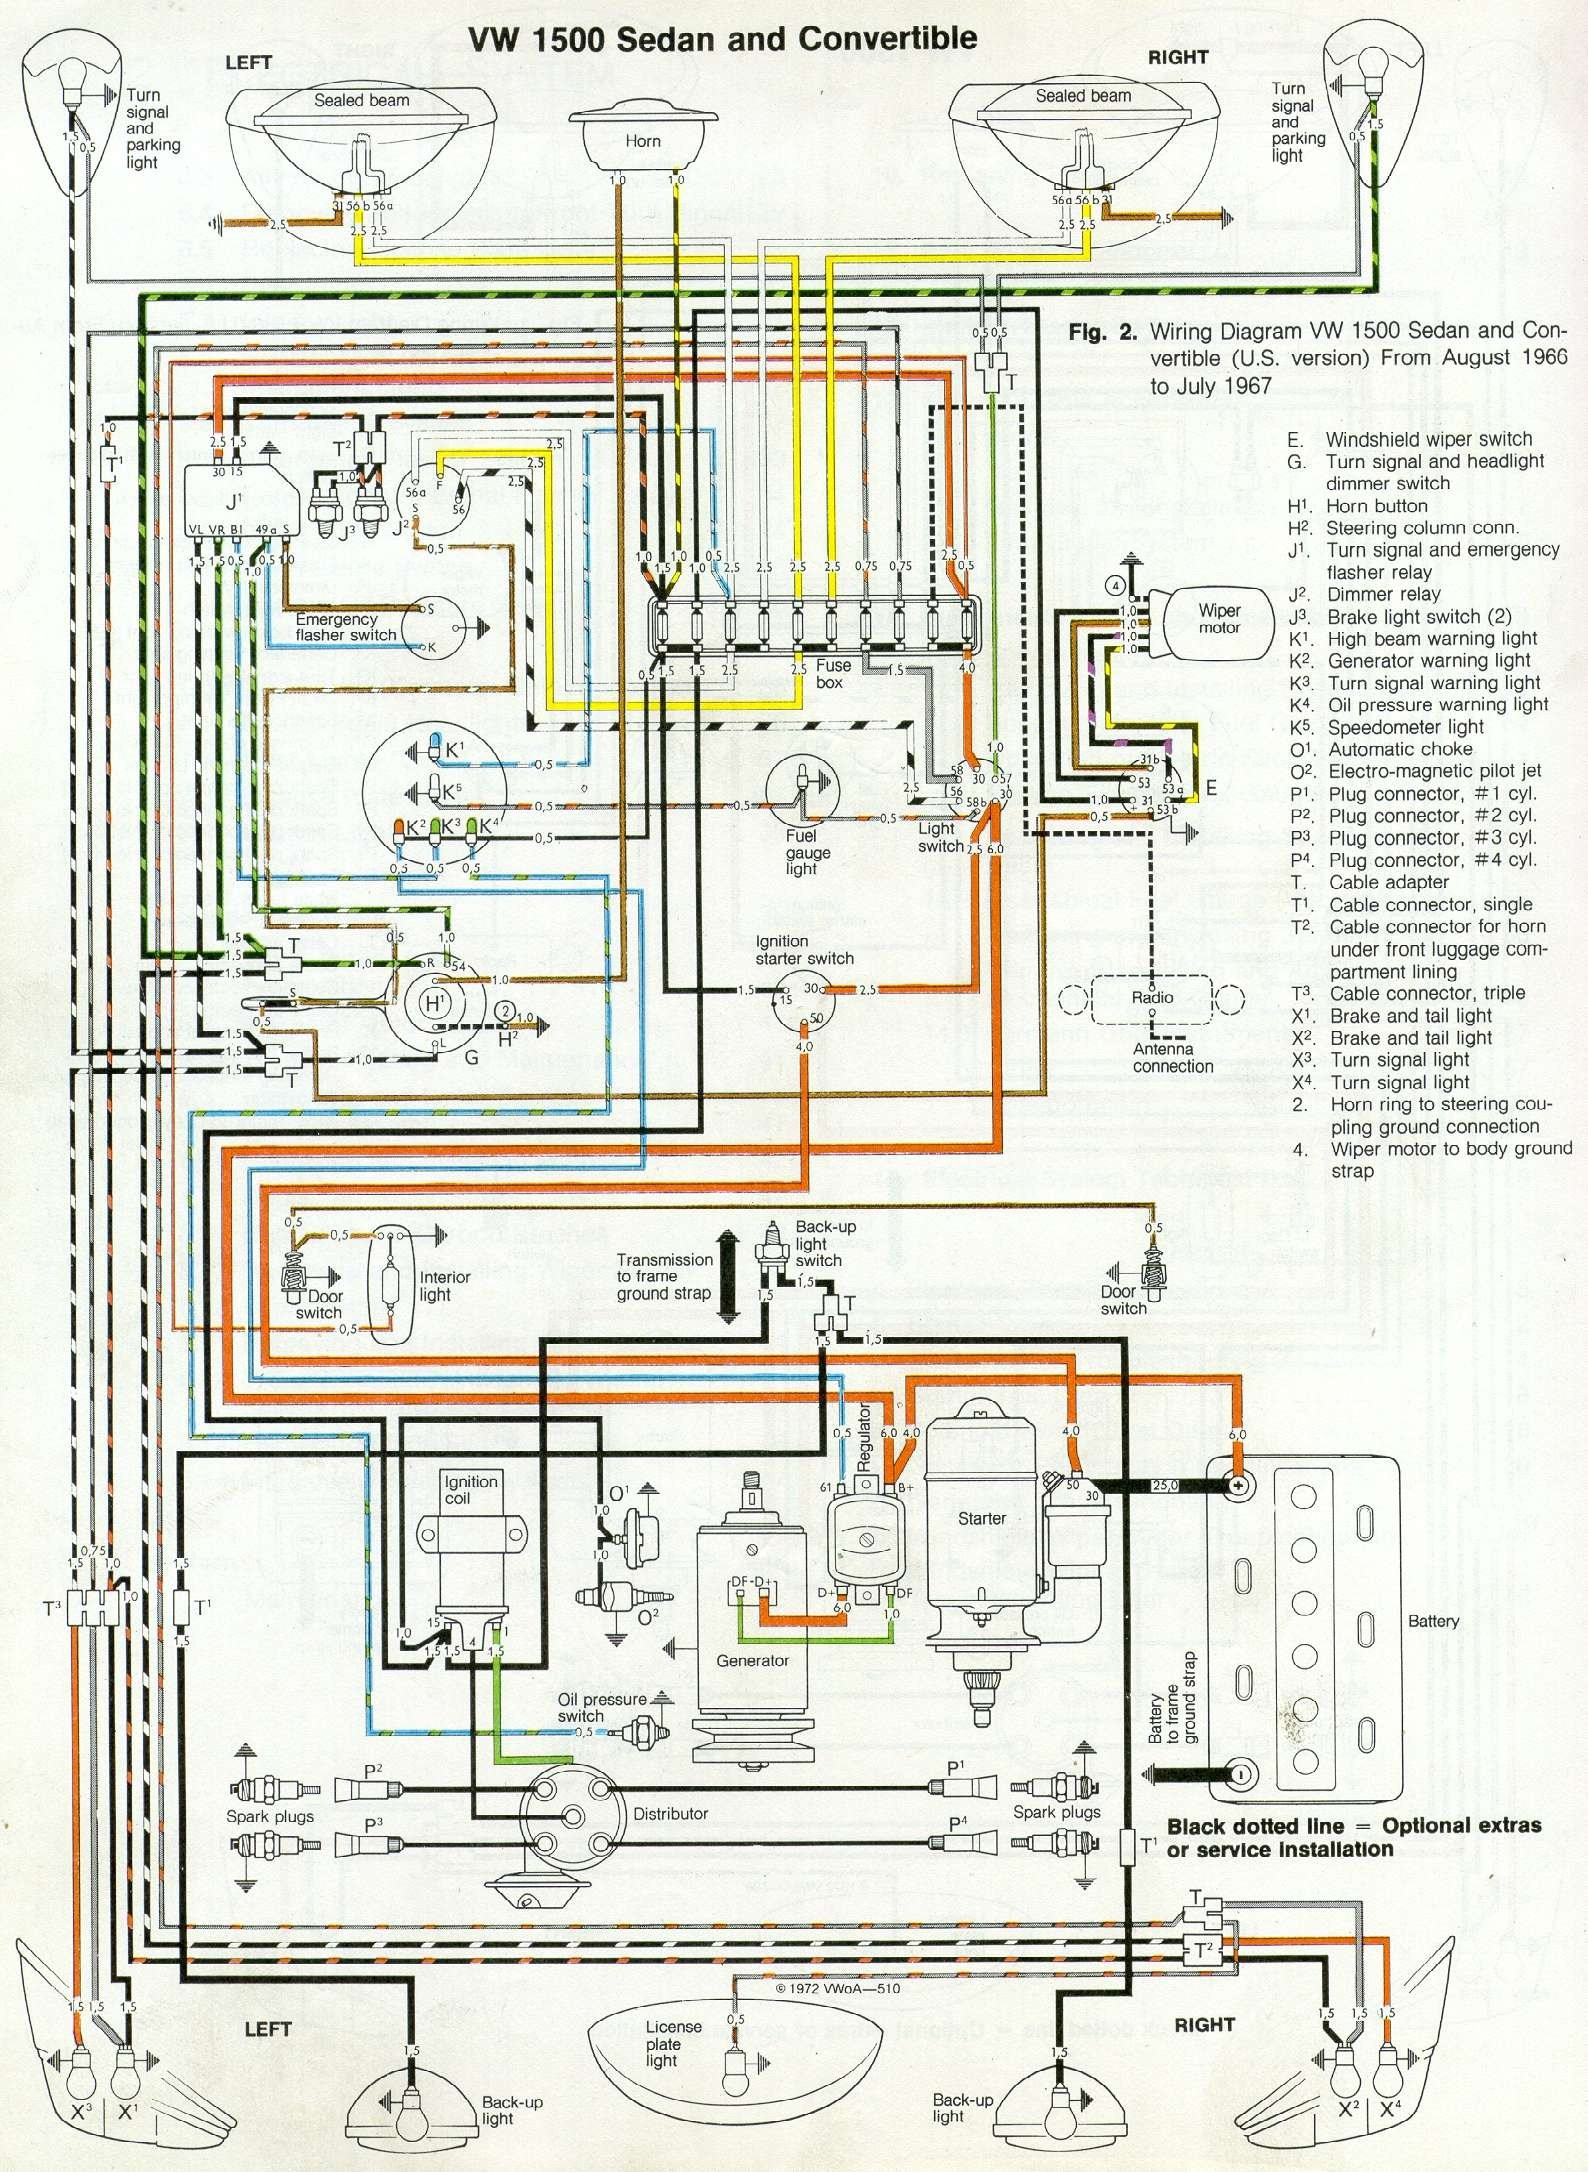 VW Beetle Wiring Digram 67 beetle wiring diagram u s version 1967 vw beetle vw wiring diagrams at pacquiaovsvargaslive.co